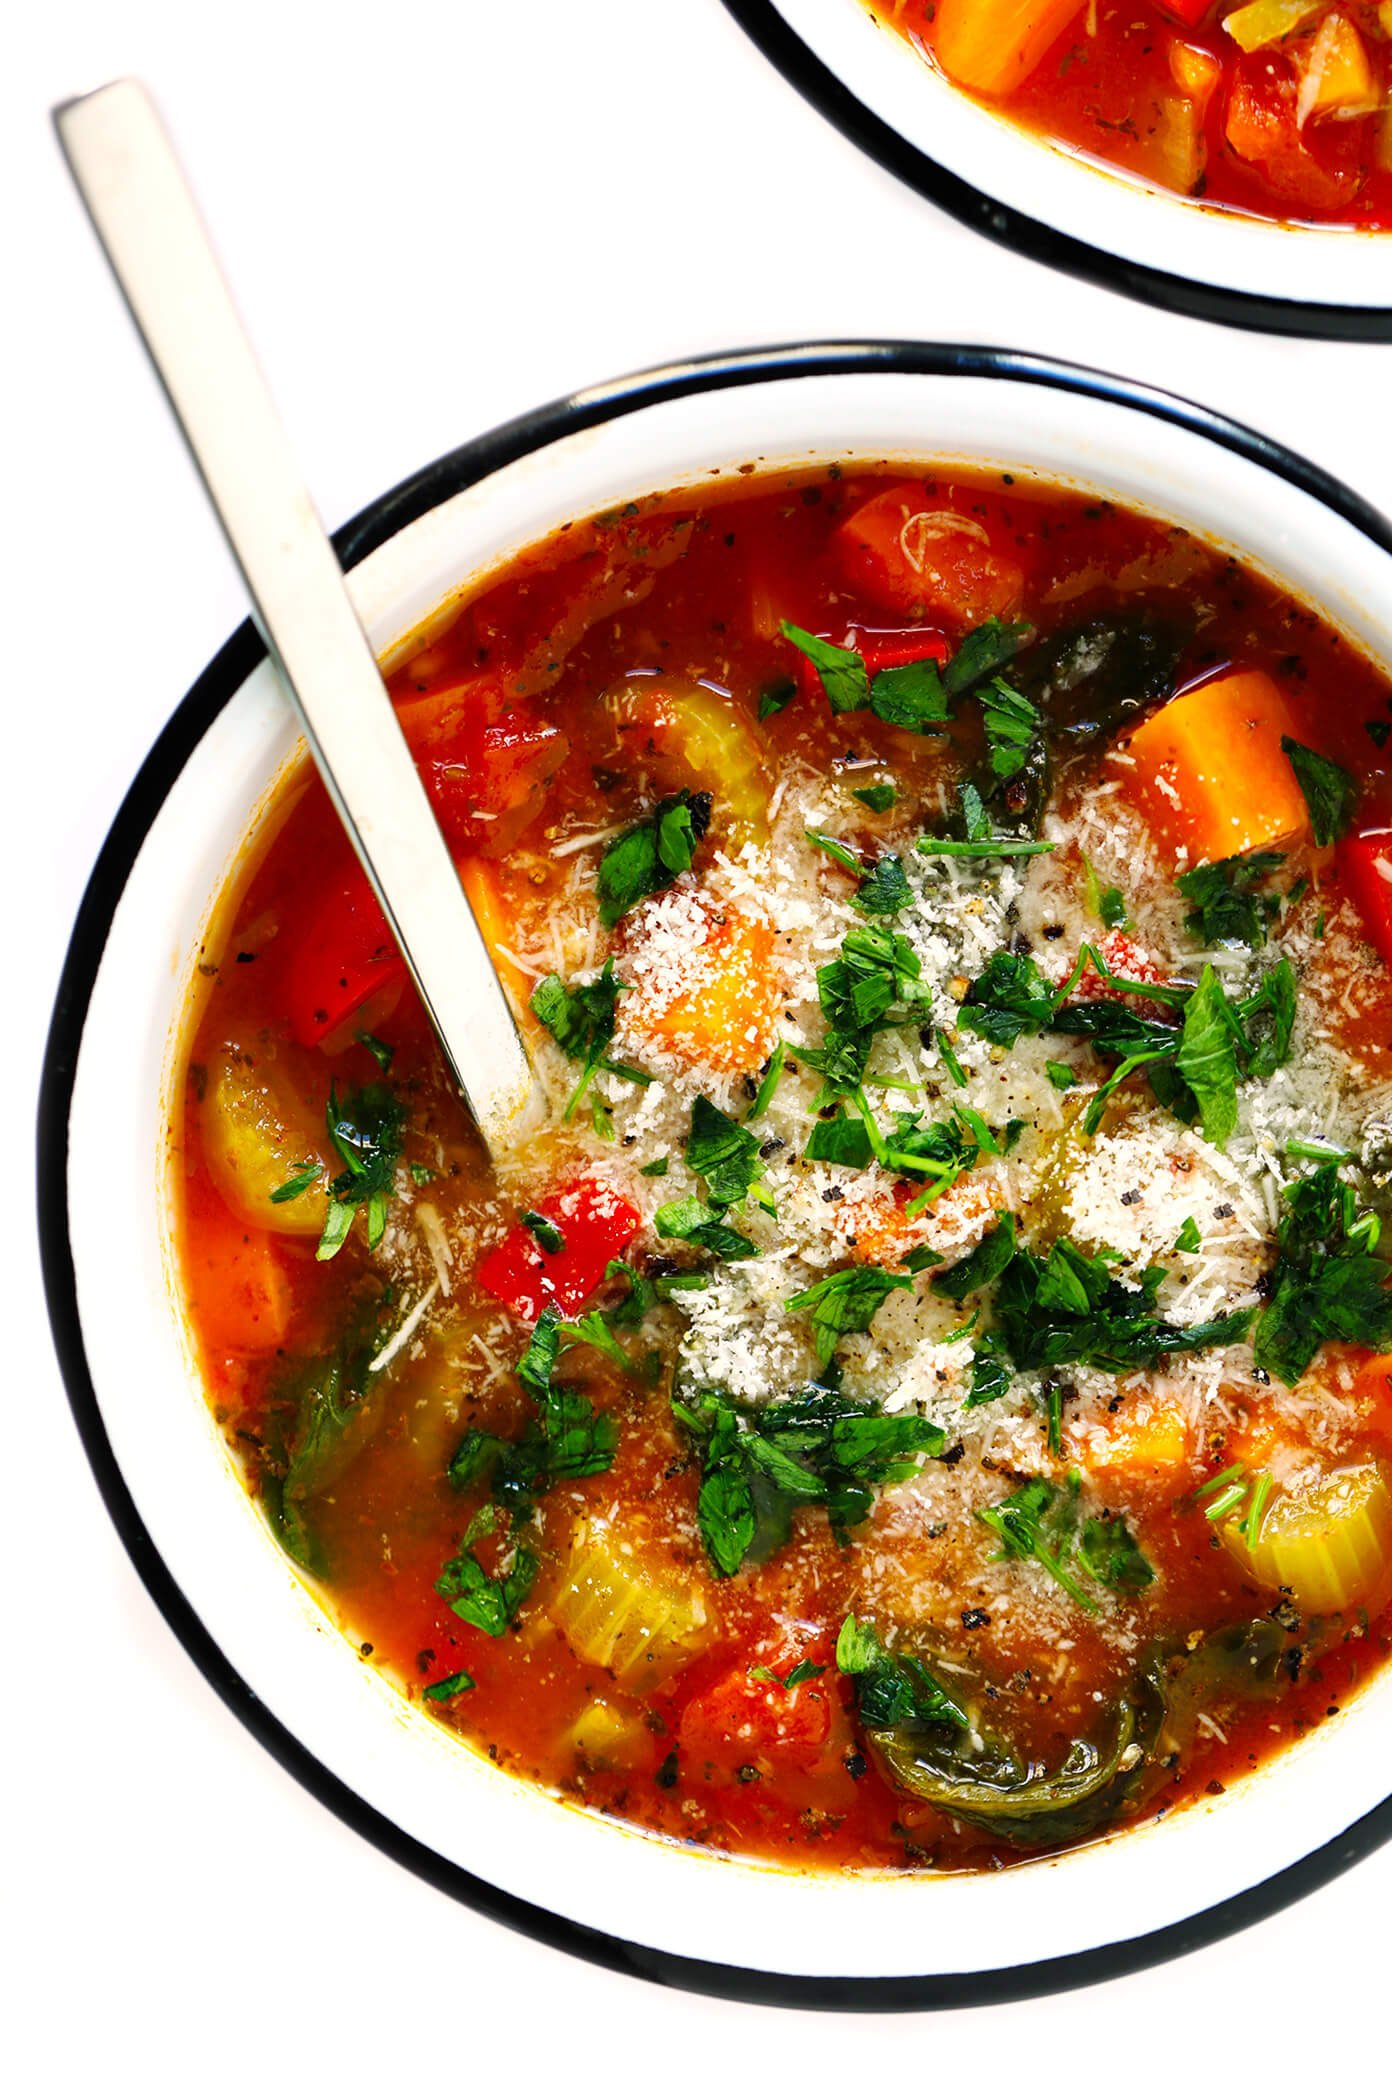 My Favorite Vegetable Soup Recipe   Gimme Some Oven